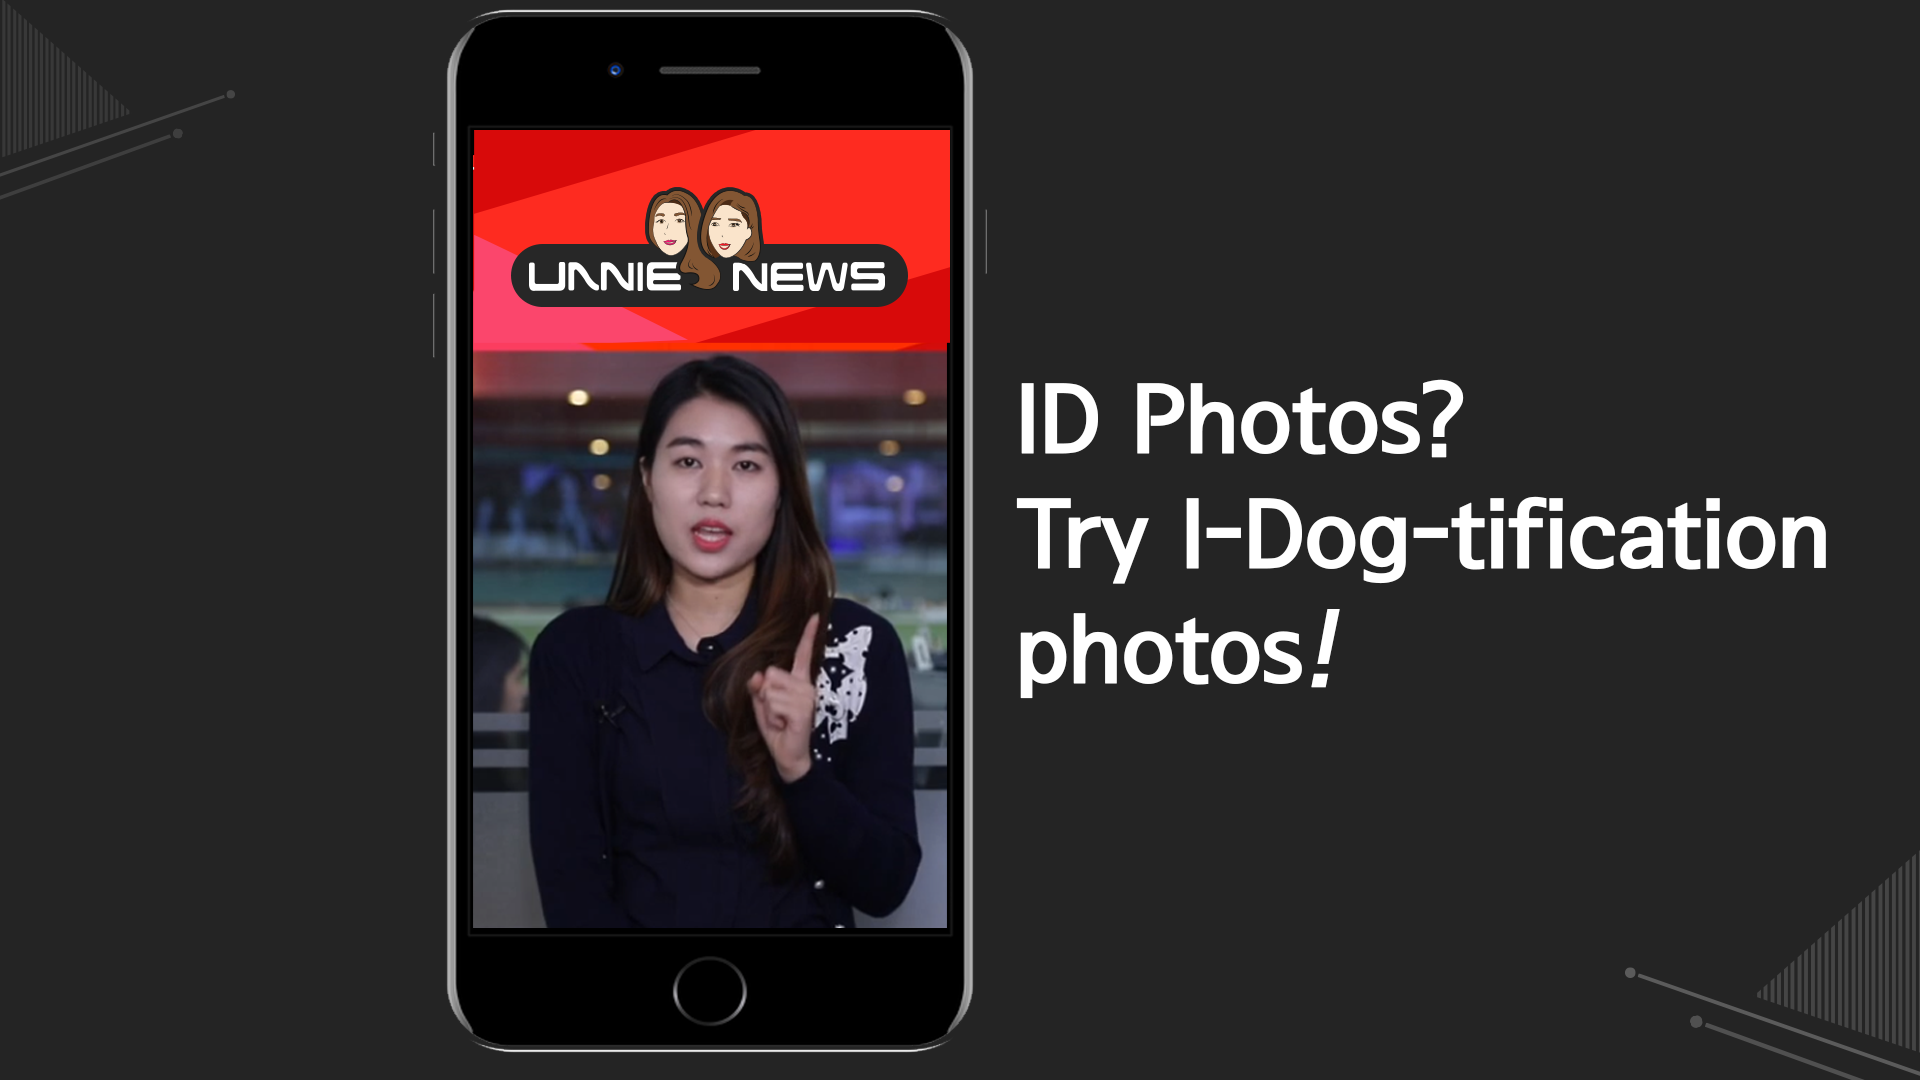 [UNNIE NEWS] ID Photos? Try I-Dog-tification photos!